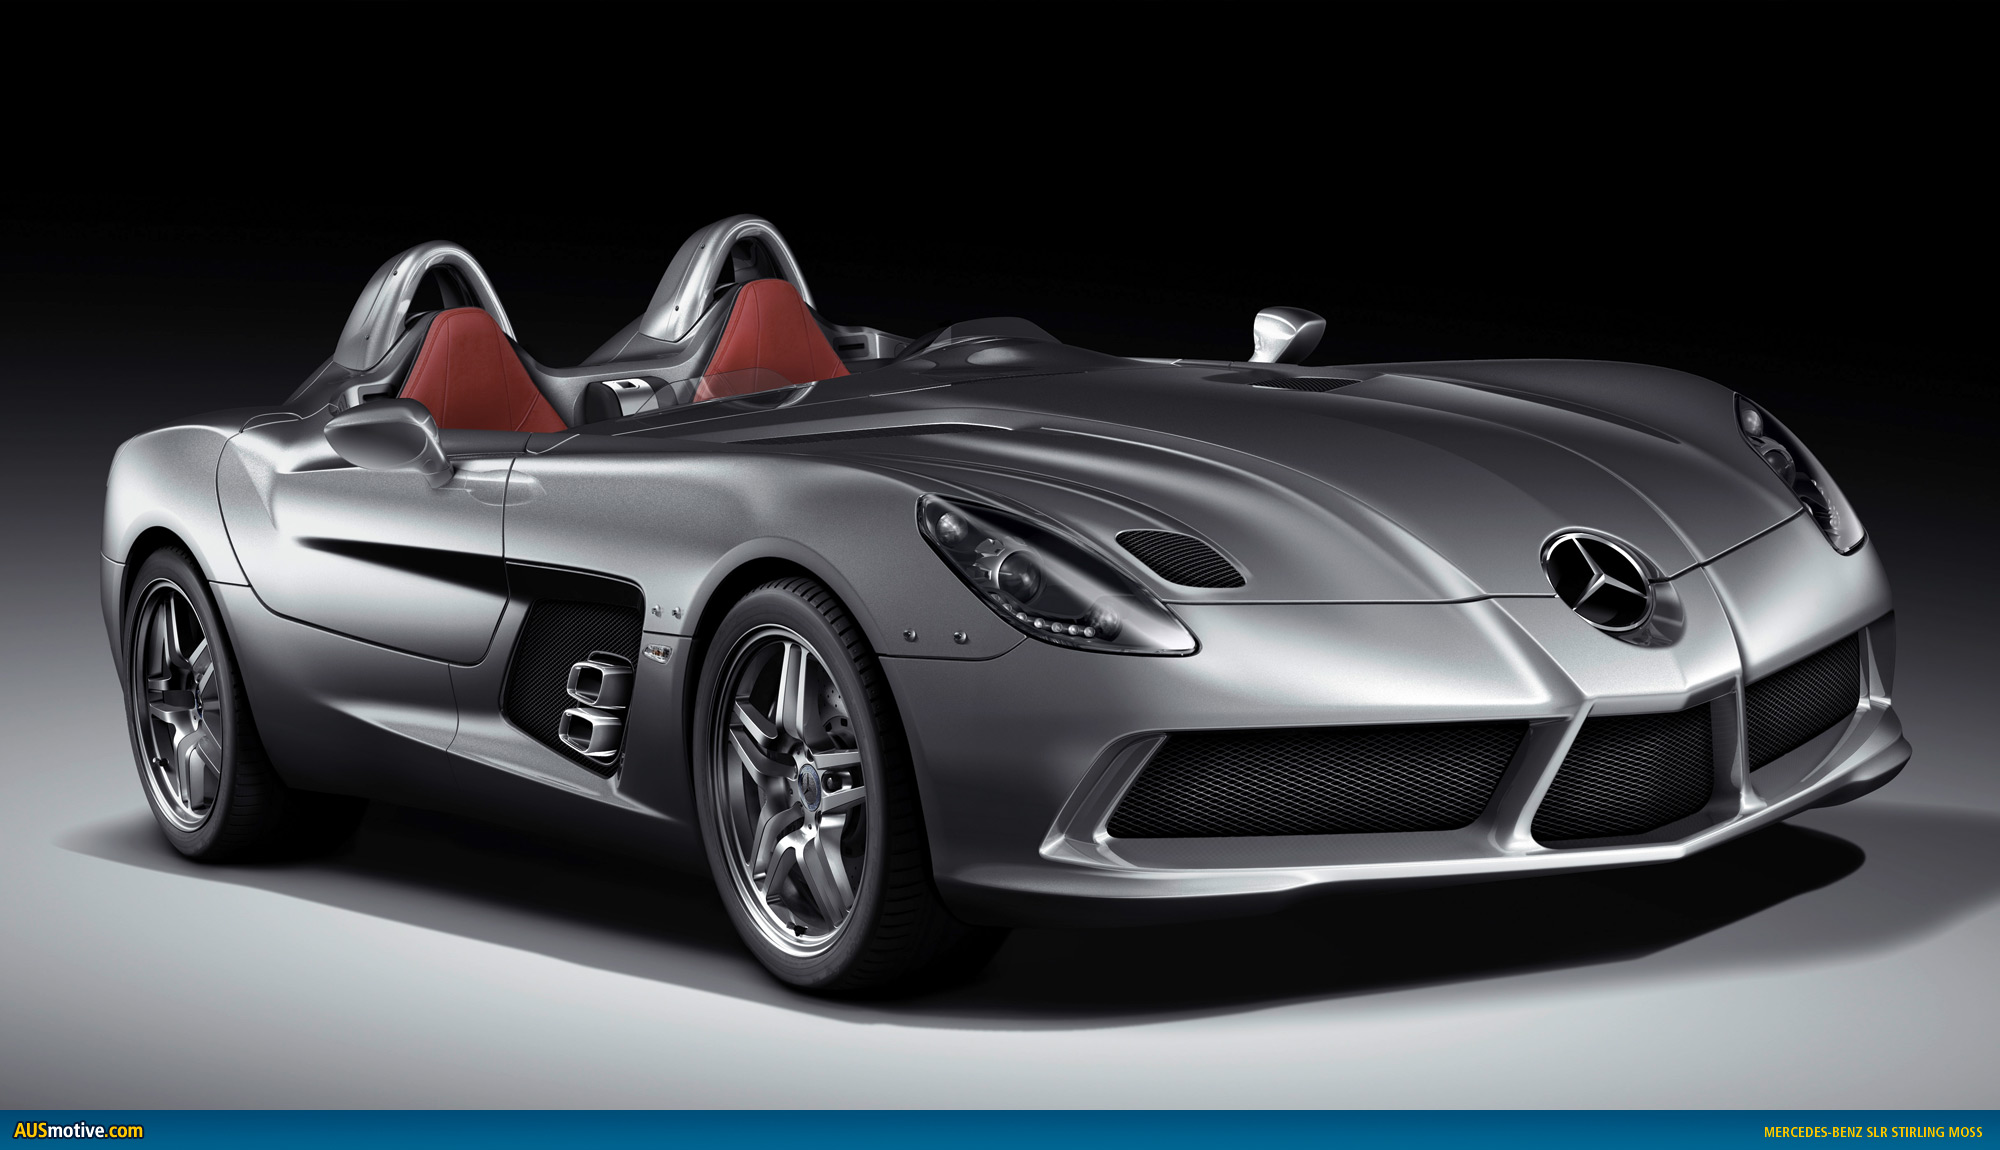 Mercedes benz slr stirling moss for Autos mercedes benz